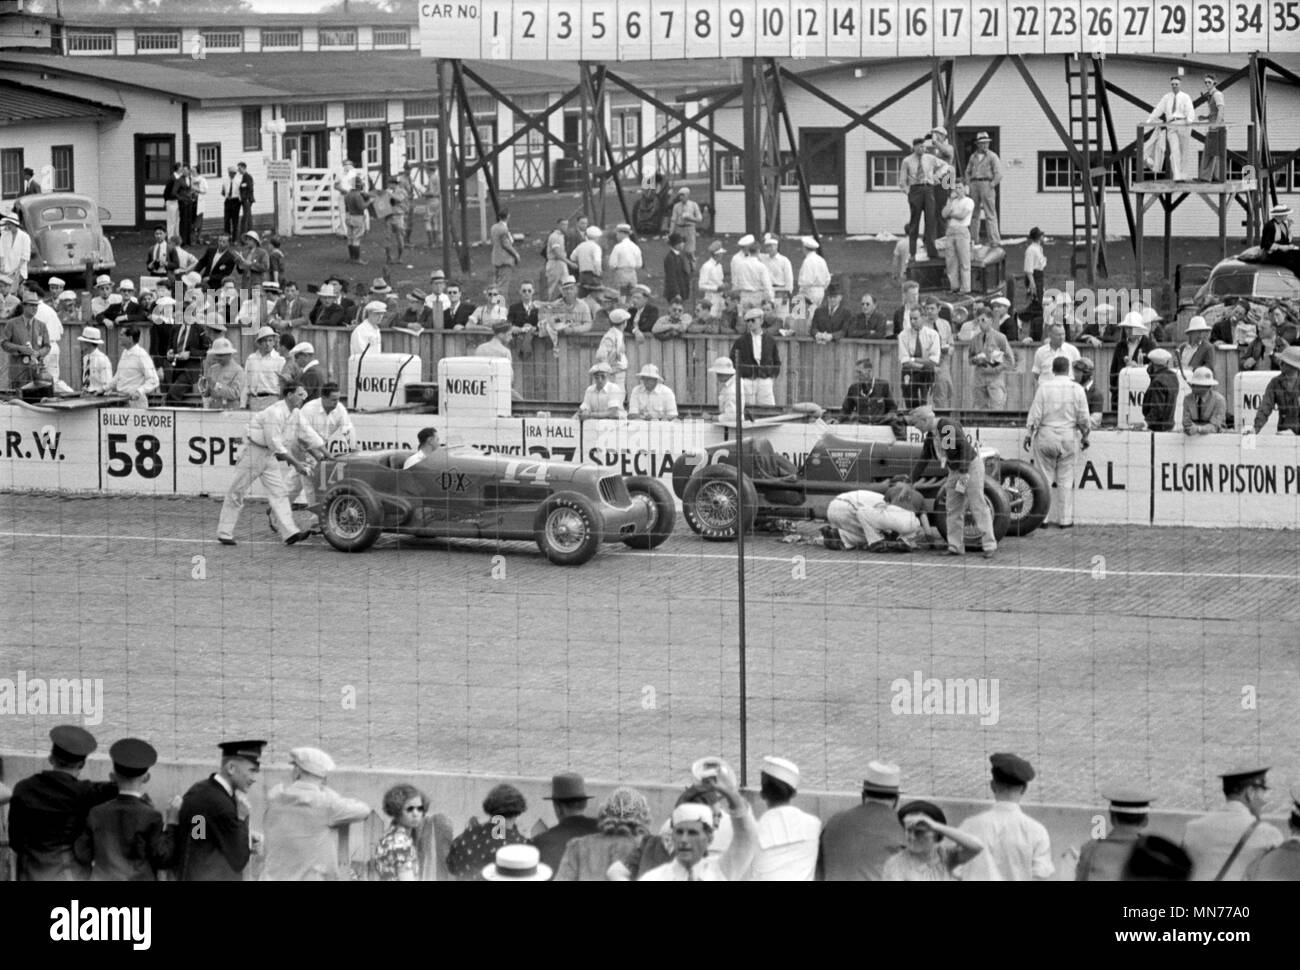 Automobile Race, Indianapolis, Indiana, USA, Arthur Rothstein for U.S. Resettlement Administration, May 1938 - Stock Image